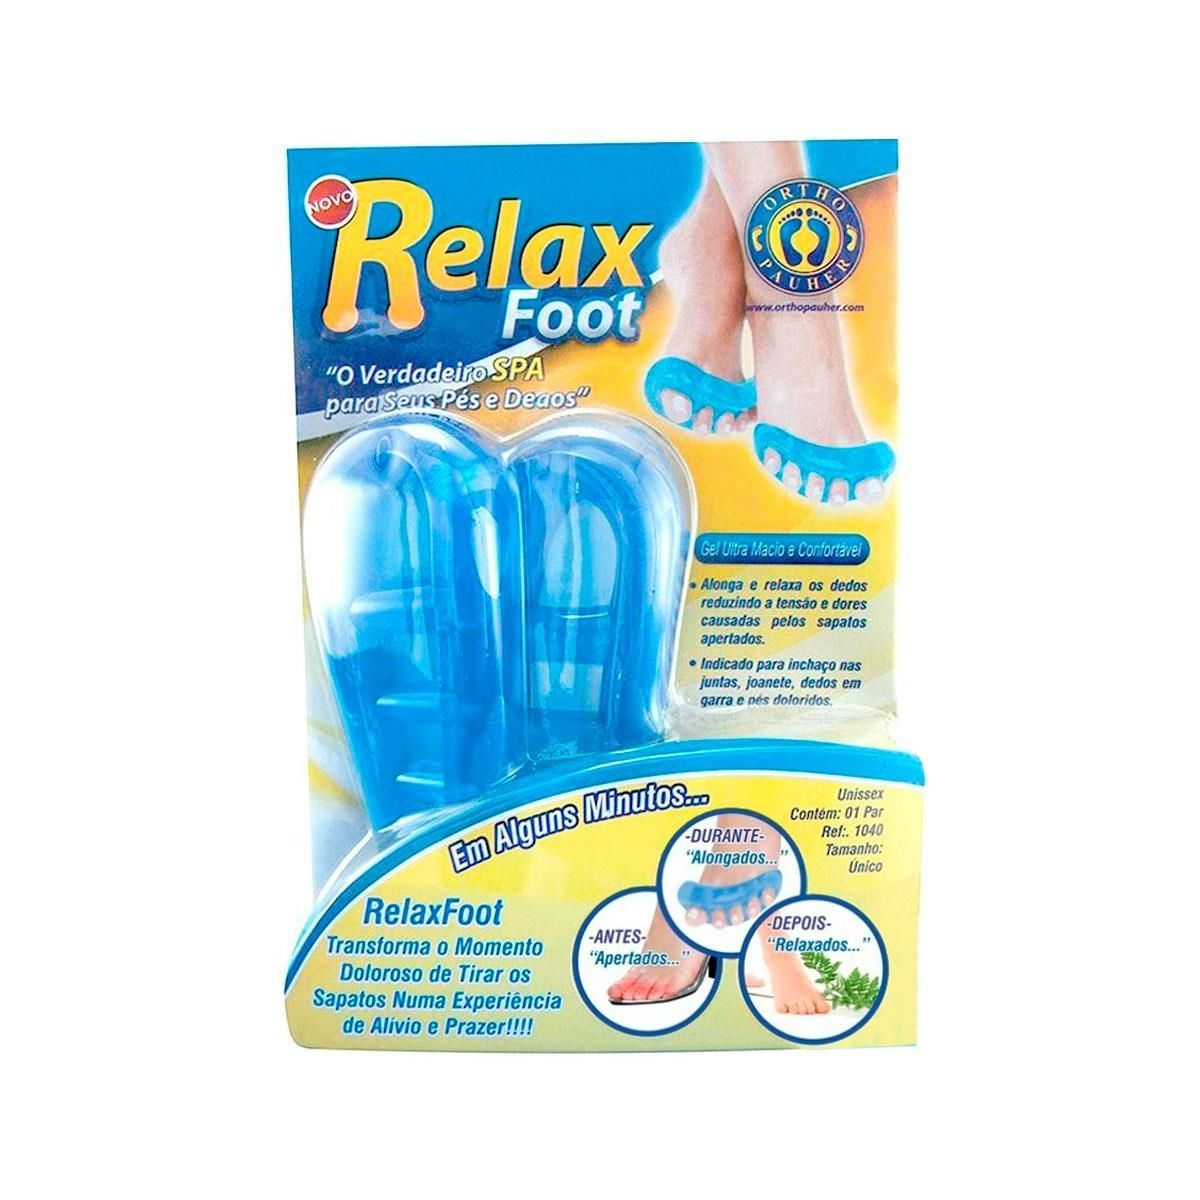 Relax O Pauher Footica 1040